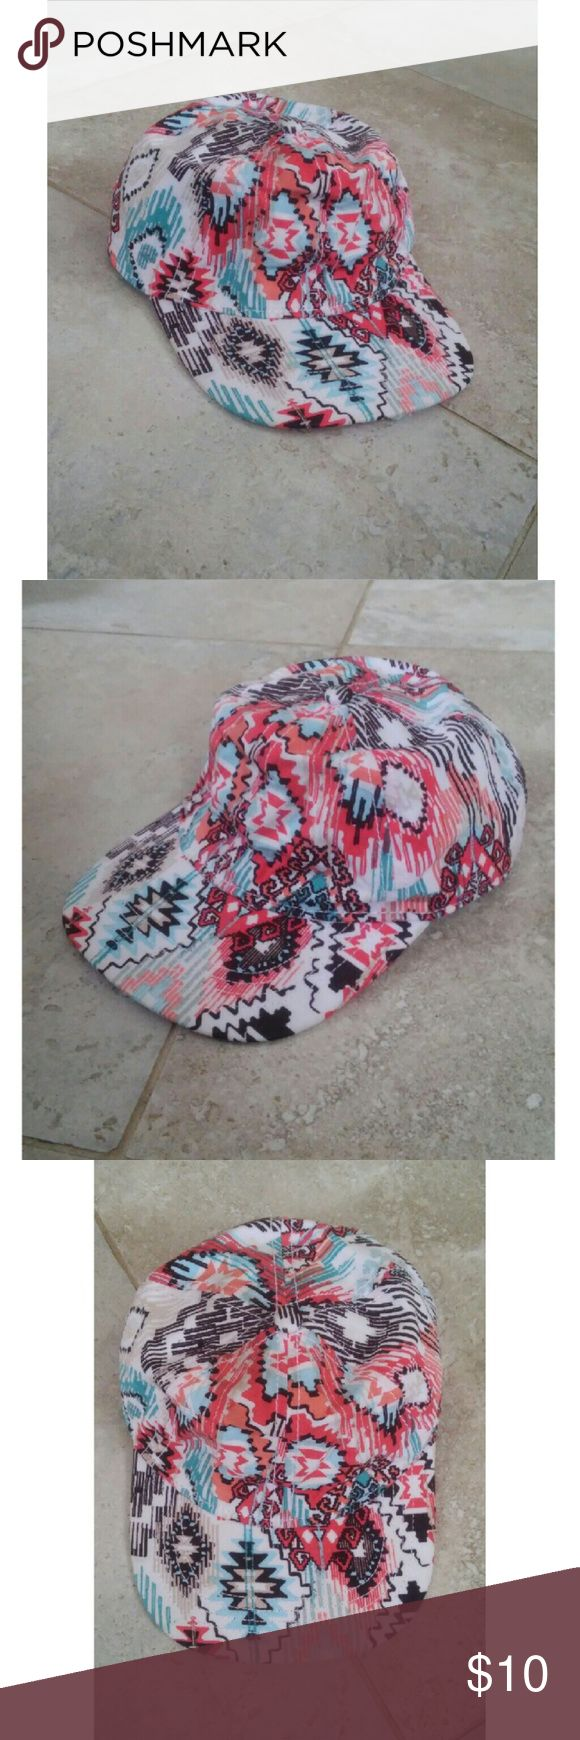 Aztec colorful design baseball cap hat Brand New WITHOUT tags!  Aztec design Colorful Baseball hat Accessories Hats